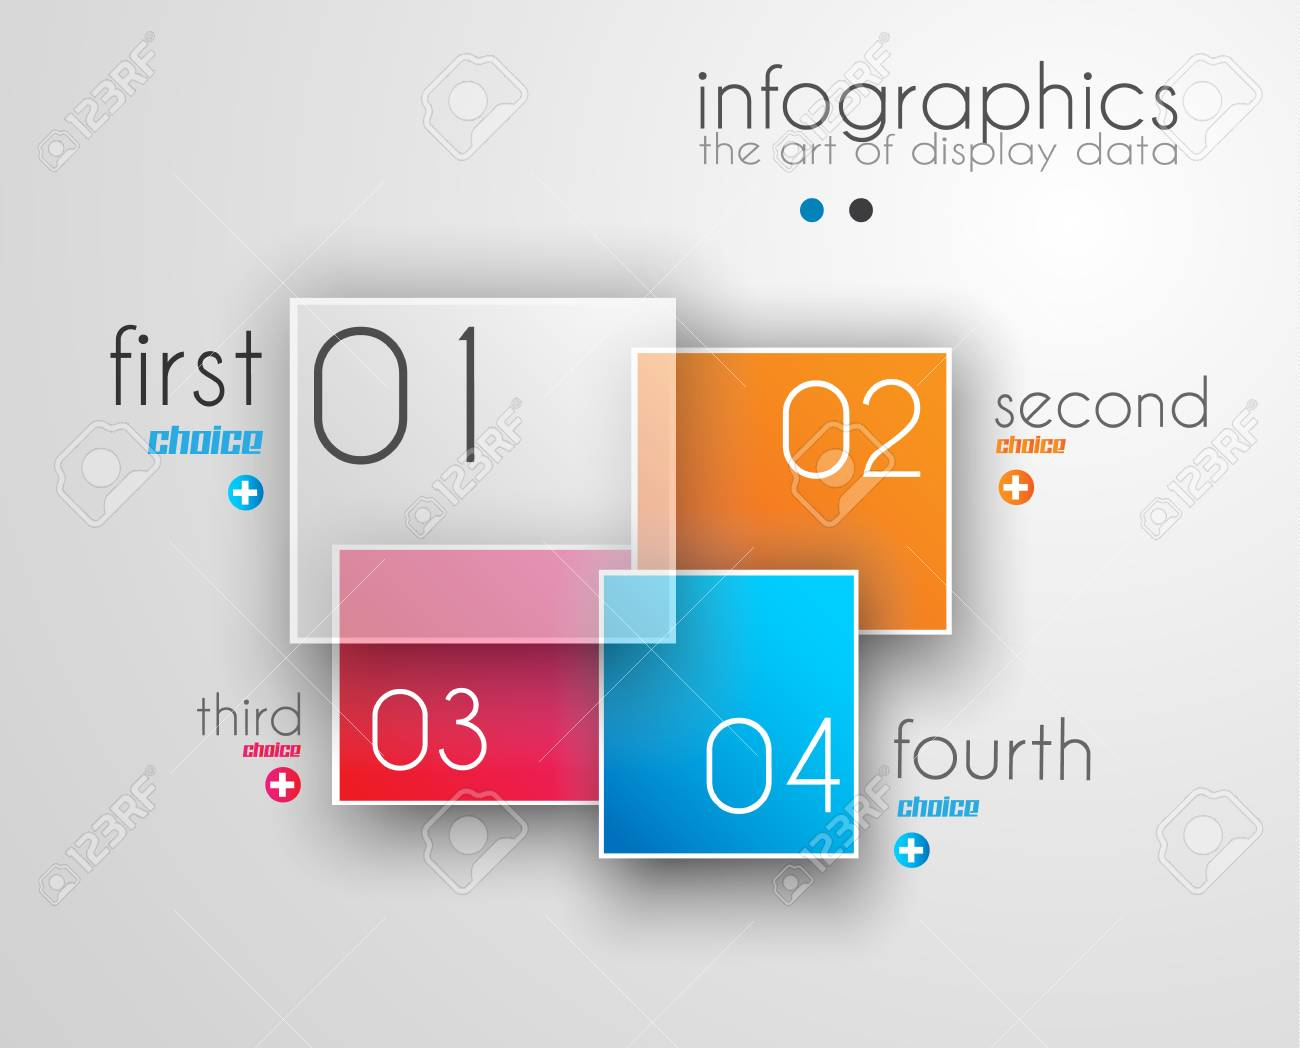 Infographic Design Template with modern flat style. Ideal to display data and for product ranking or generic classification of items. Stock Vector - 24570156